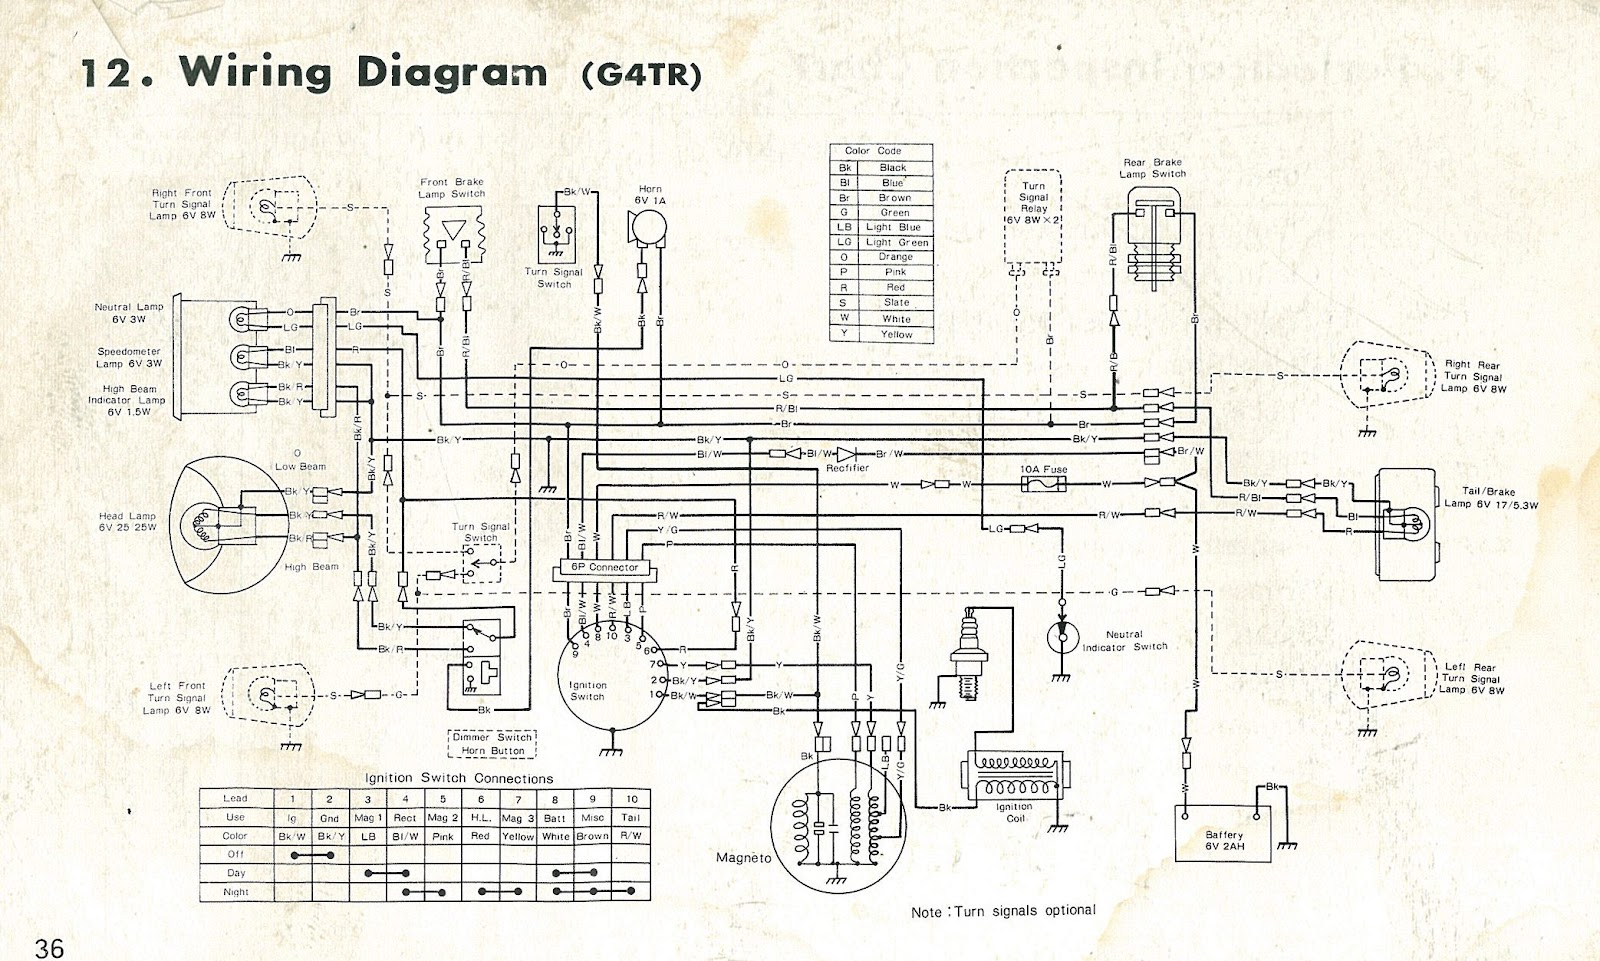 small resolution of g4 wiring diagram wiring schematic diagram 8 insuranceblog asiarestoring a 1972 kawasaki g4 tr b motorcycle